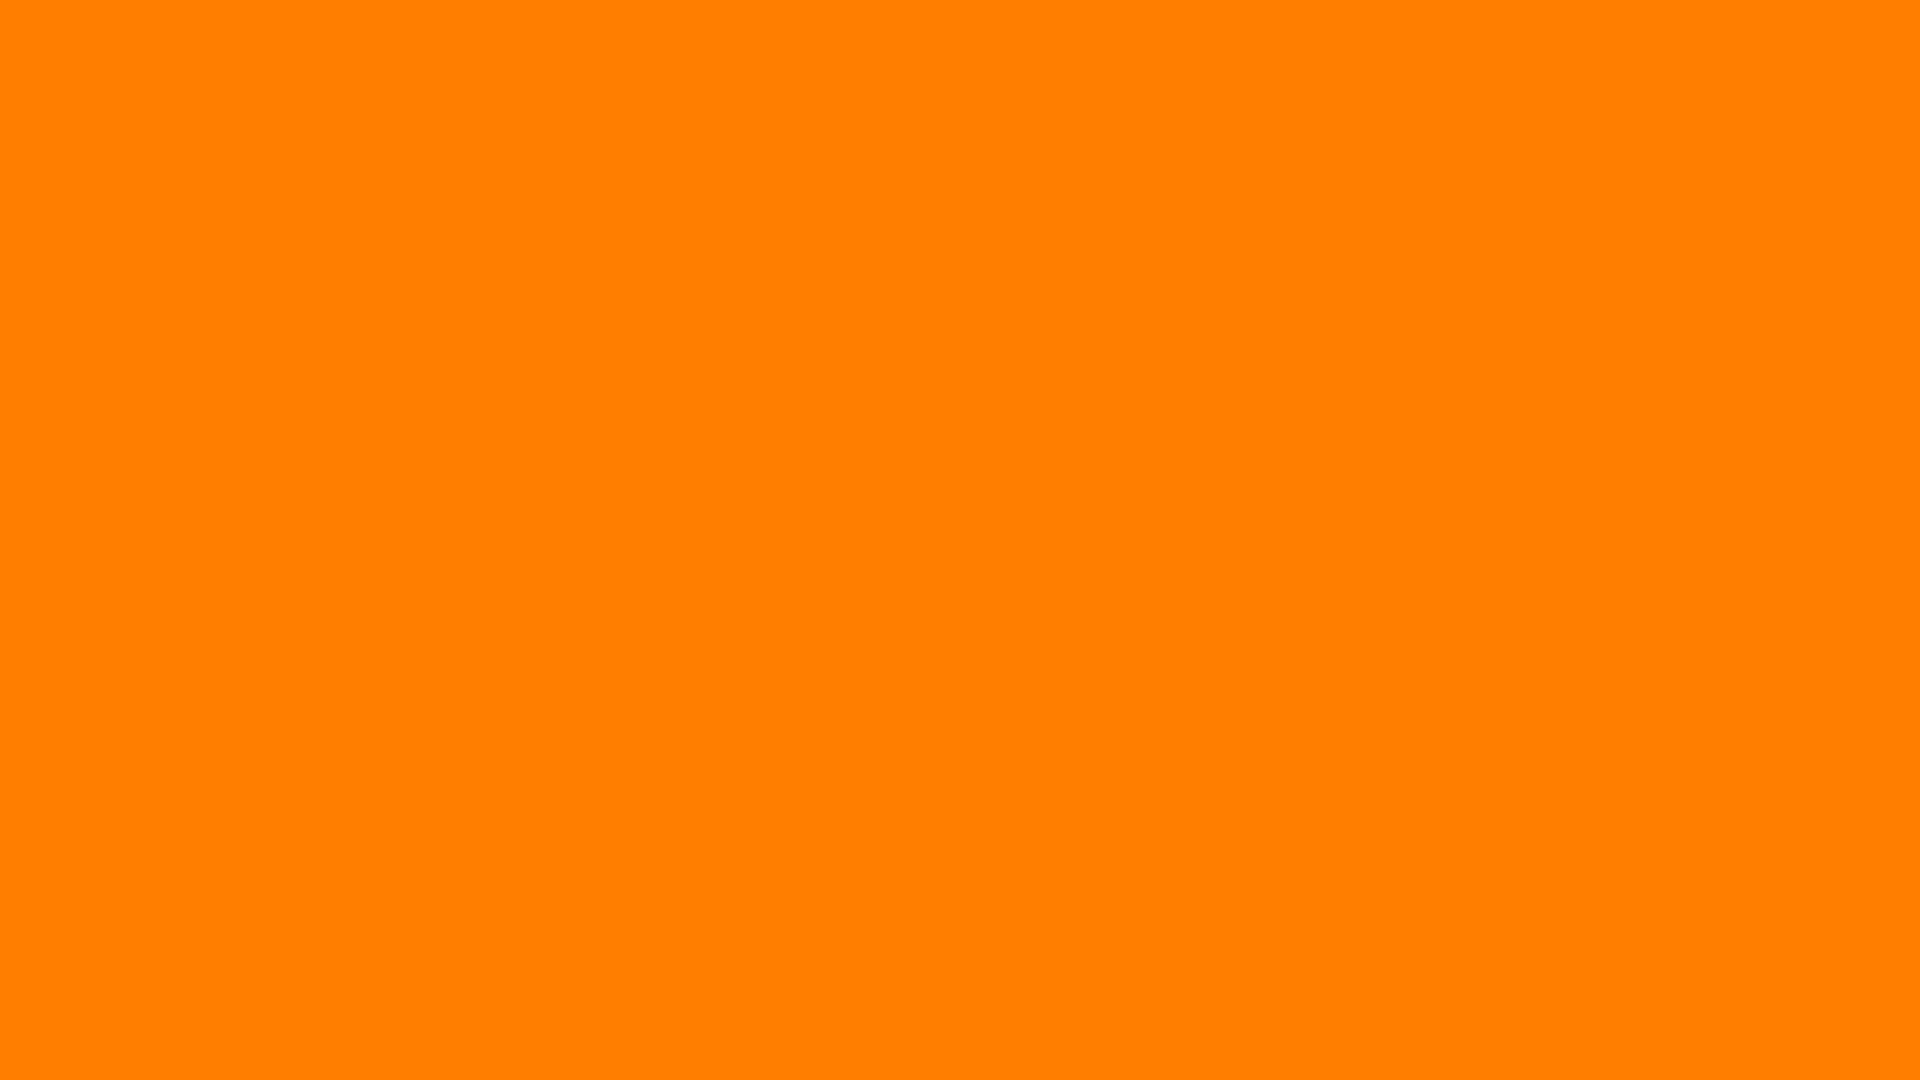 1920x1080 Amber Orange Solid Color Background 1920x1080